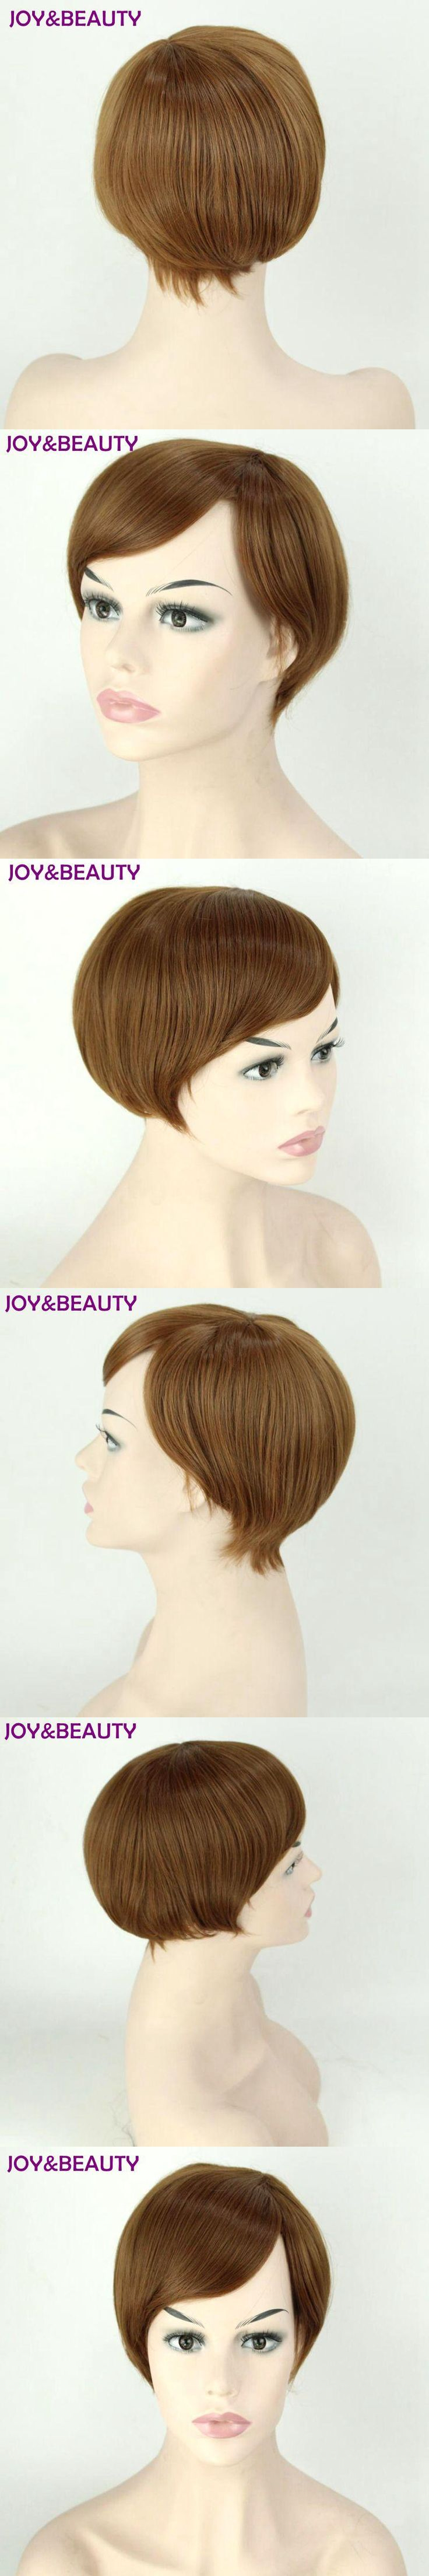 JOY&BEAUTY 30cm Synthetic Hair Short Straight Wig Light brown Side Parting Bob Wigs With Bangs For Black Women